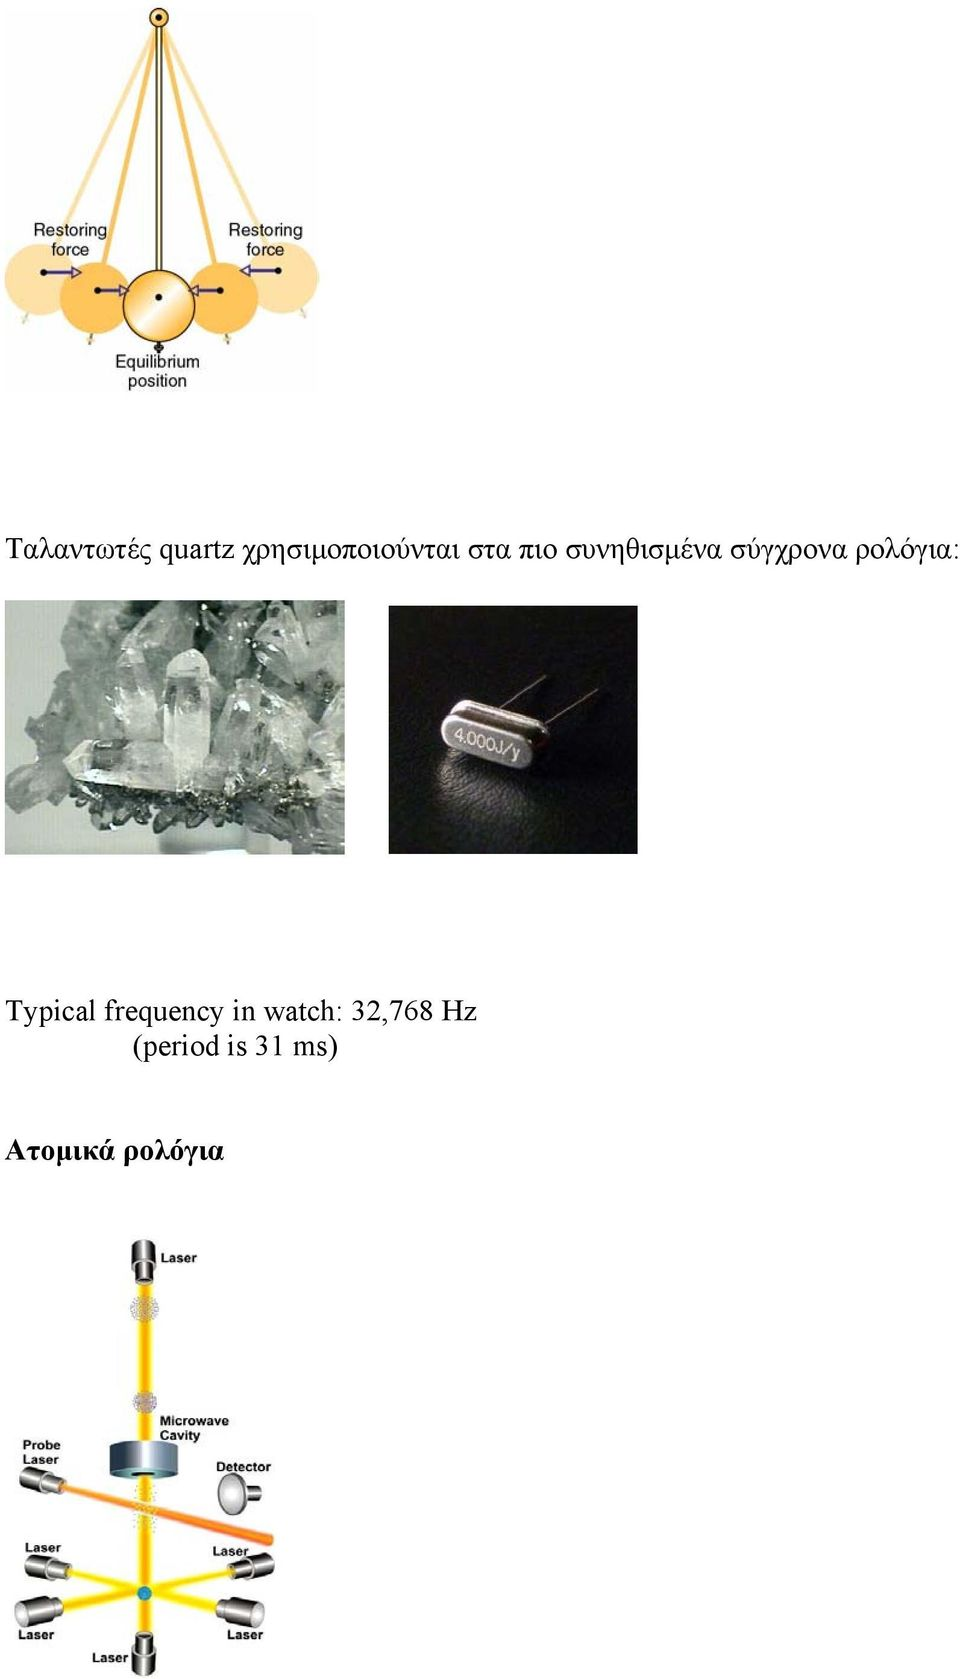 ρολόγια: Typical frequency in